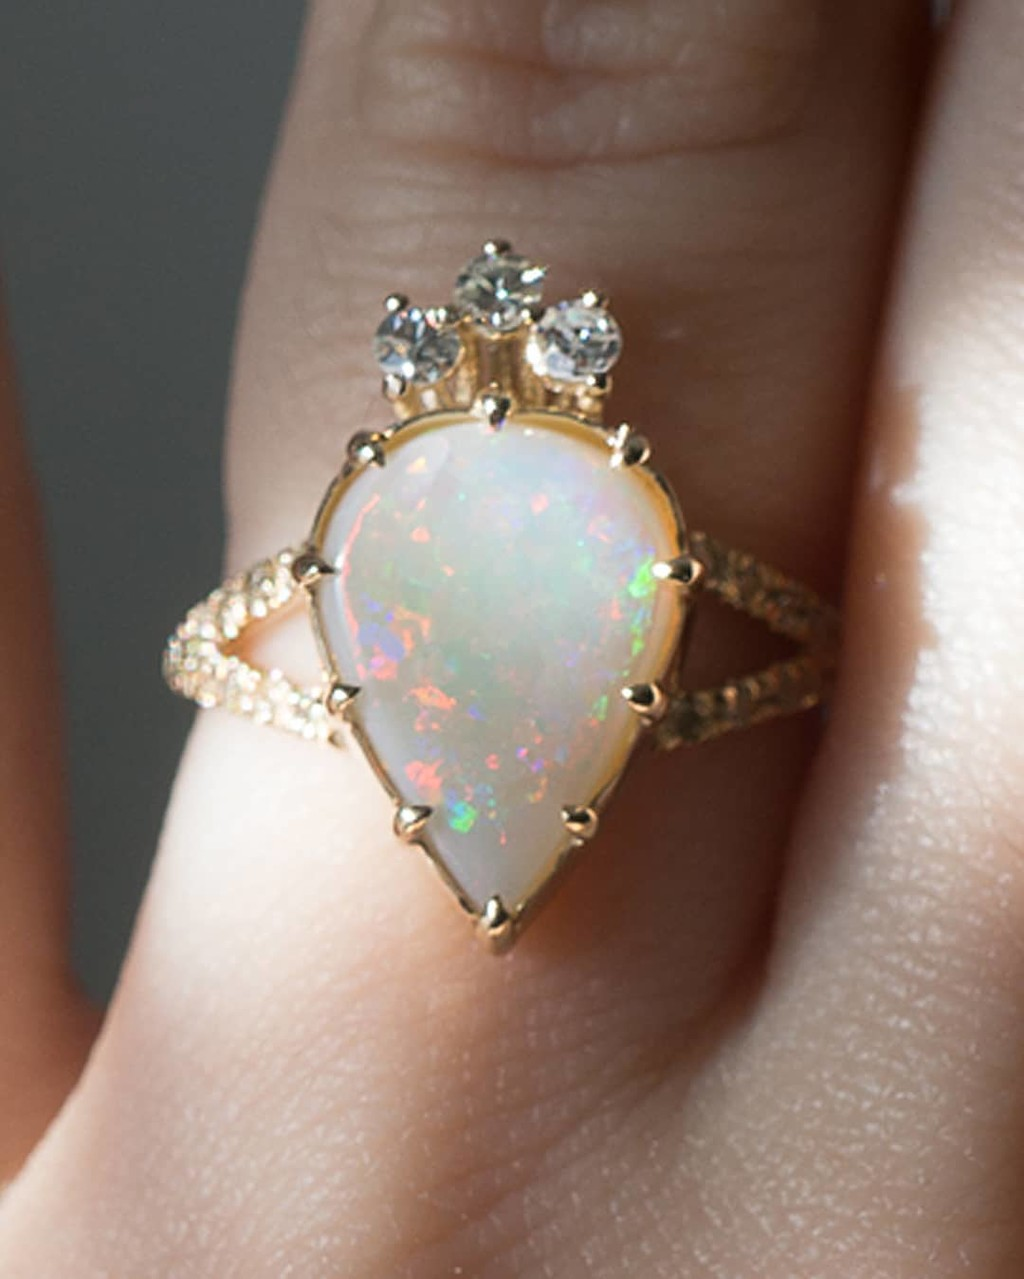 ❤️👑🔥⚡️️🌞✨💫Made with the utmost care and love we are so excited to share our Estelle Australian Opal Ring